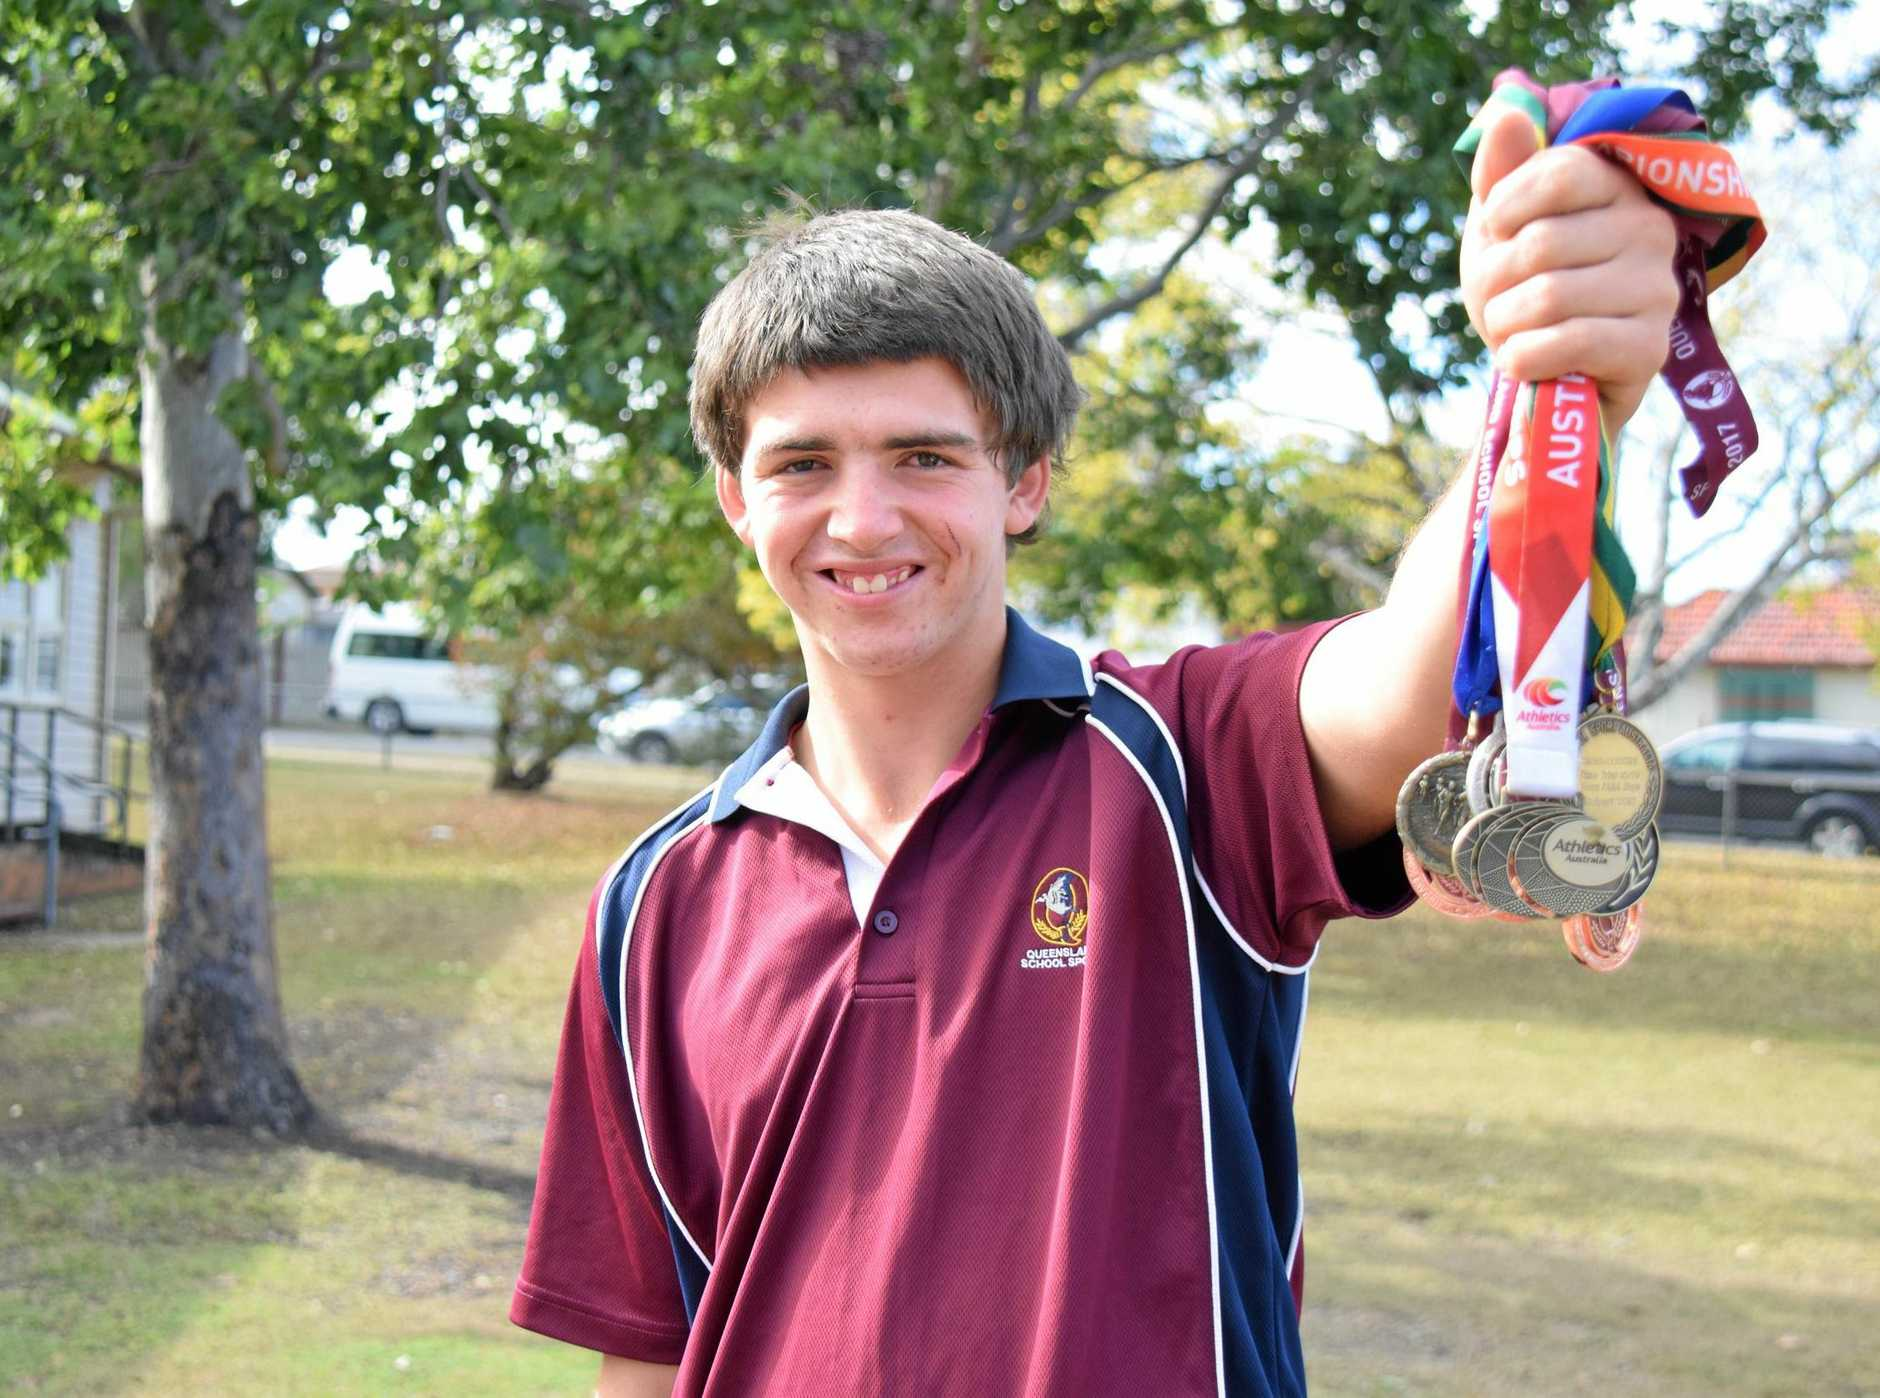 GAMES IN SIGHTS: Richard Bridges won the National Championship for the 800m run last year and has just received Pierre de Coubertin Award from the Queensland Olympic Council.